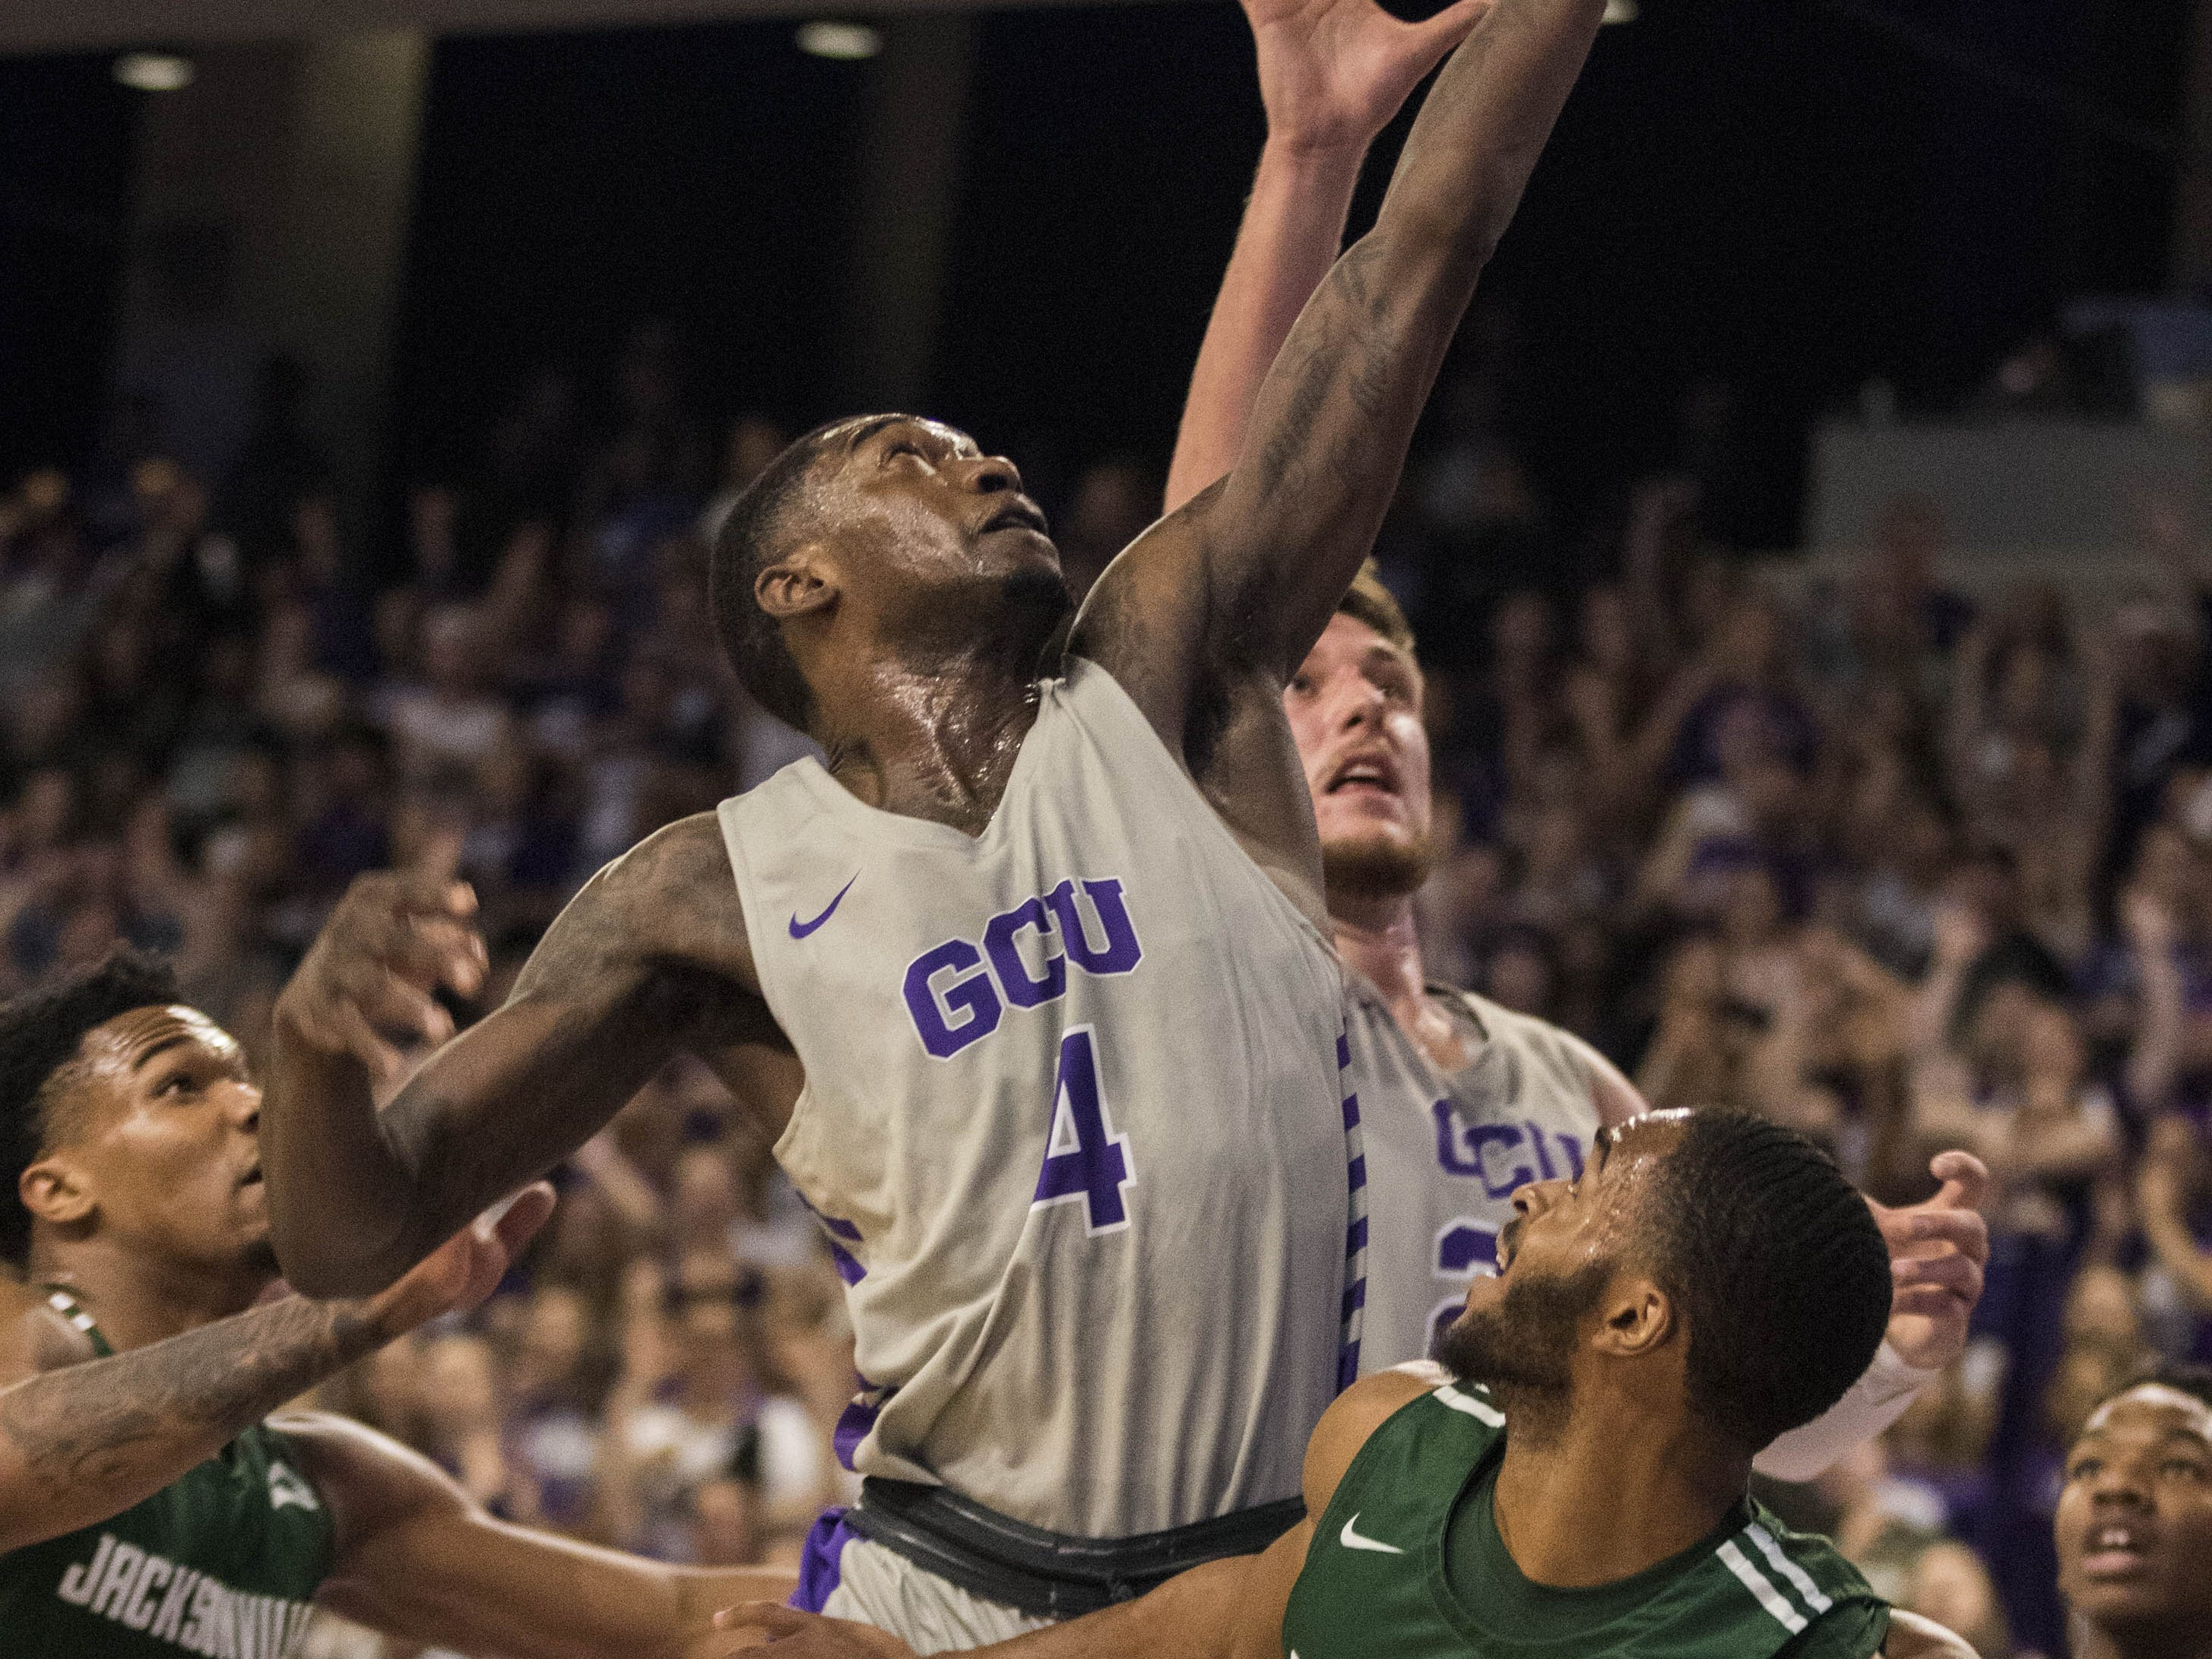 Grand Canyon University's Oscar Frayer (4) pulls down a rebound against Jacksonville's Tyreese Davis (23) and Aamahne Santos (10) during the first half of their game in Phoenix, Monday, Nov. 11, 2018.